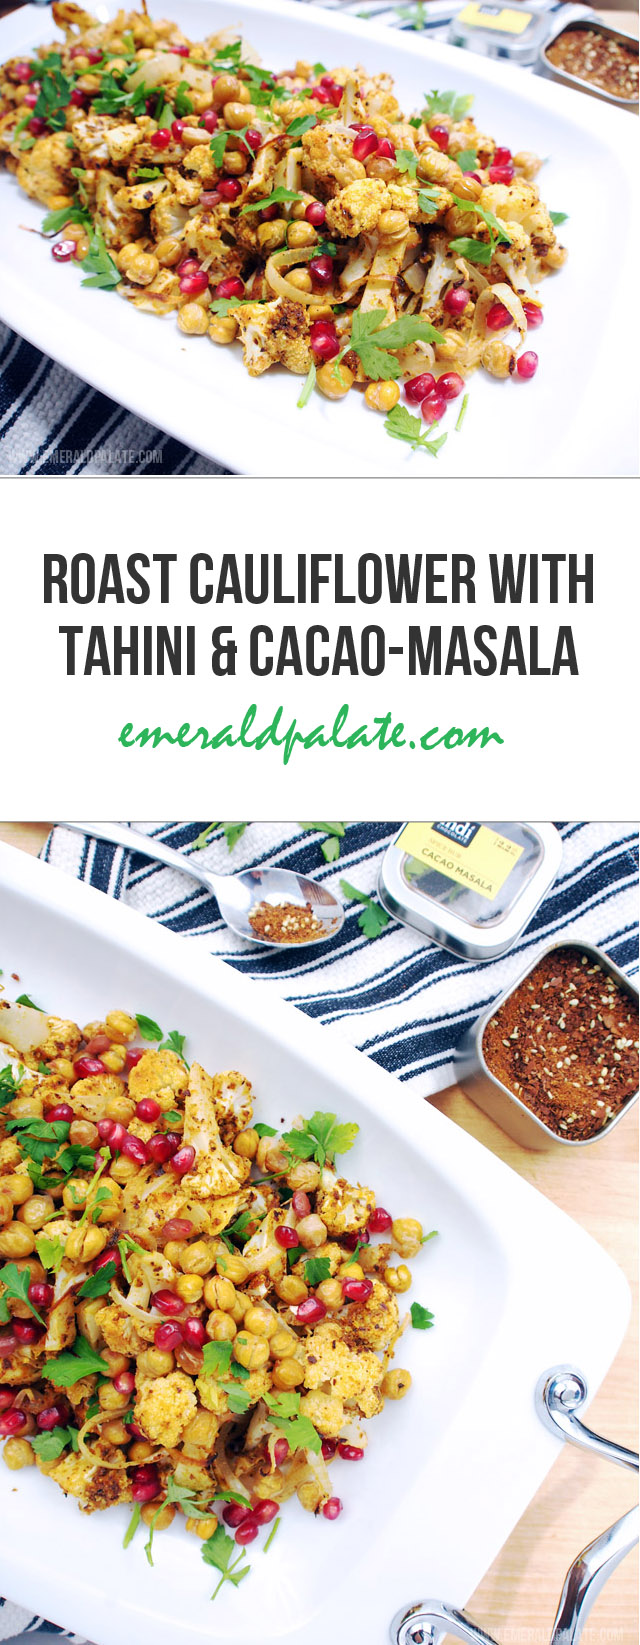 Roast cauliflower and chickpeas recipe with tahini and a cacao-masala spice mix from @indichocolate in Seattle.